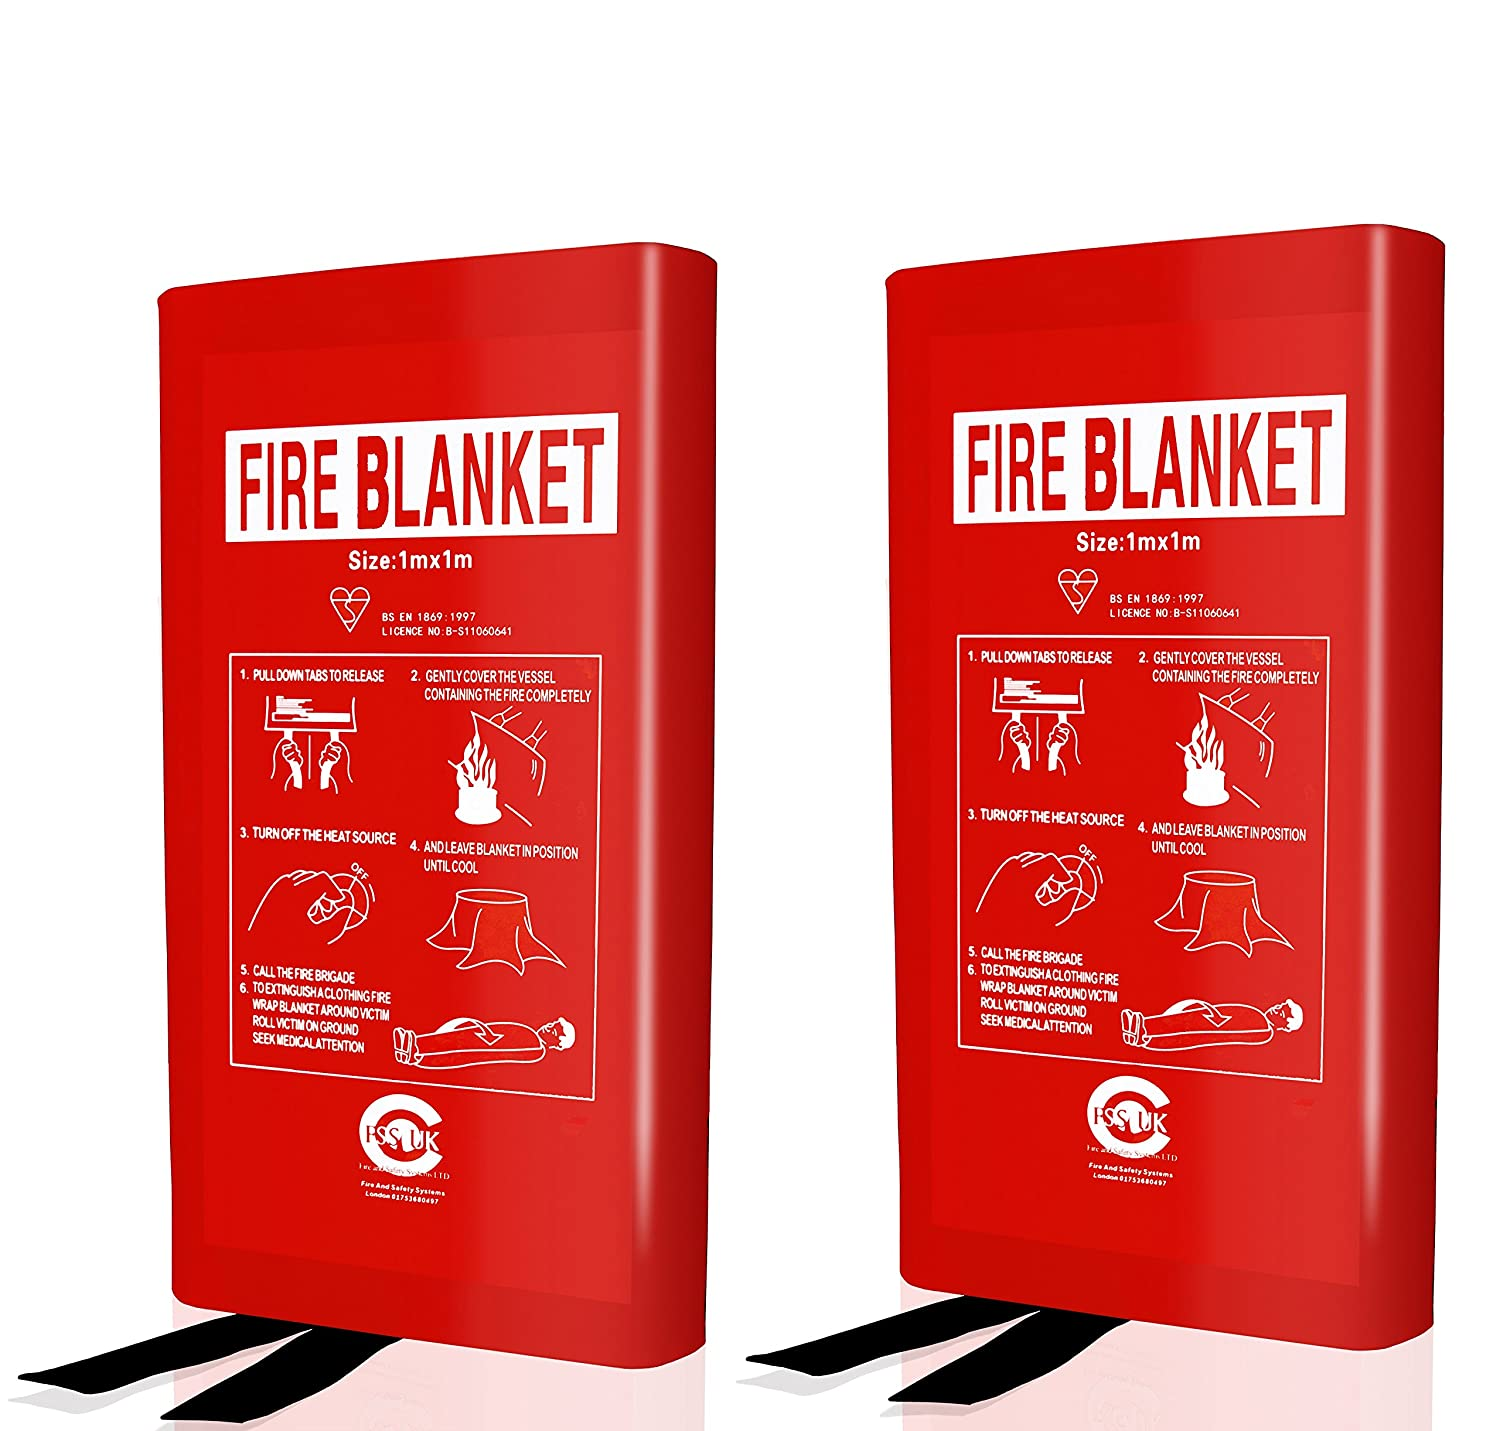 2 X FSS UK 1 METER X 1 METER Fire Blanket Large Quick Release Safety Fighting Tabs Case Or Hard Box 1M X 1M. CE AND EN3 MARKED. (HARD CASE)